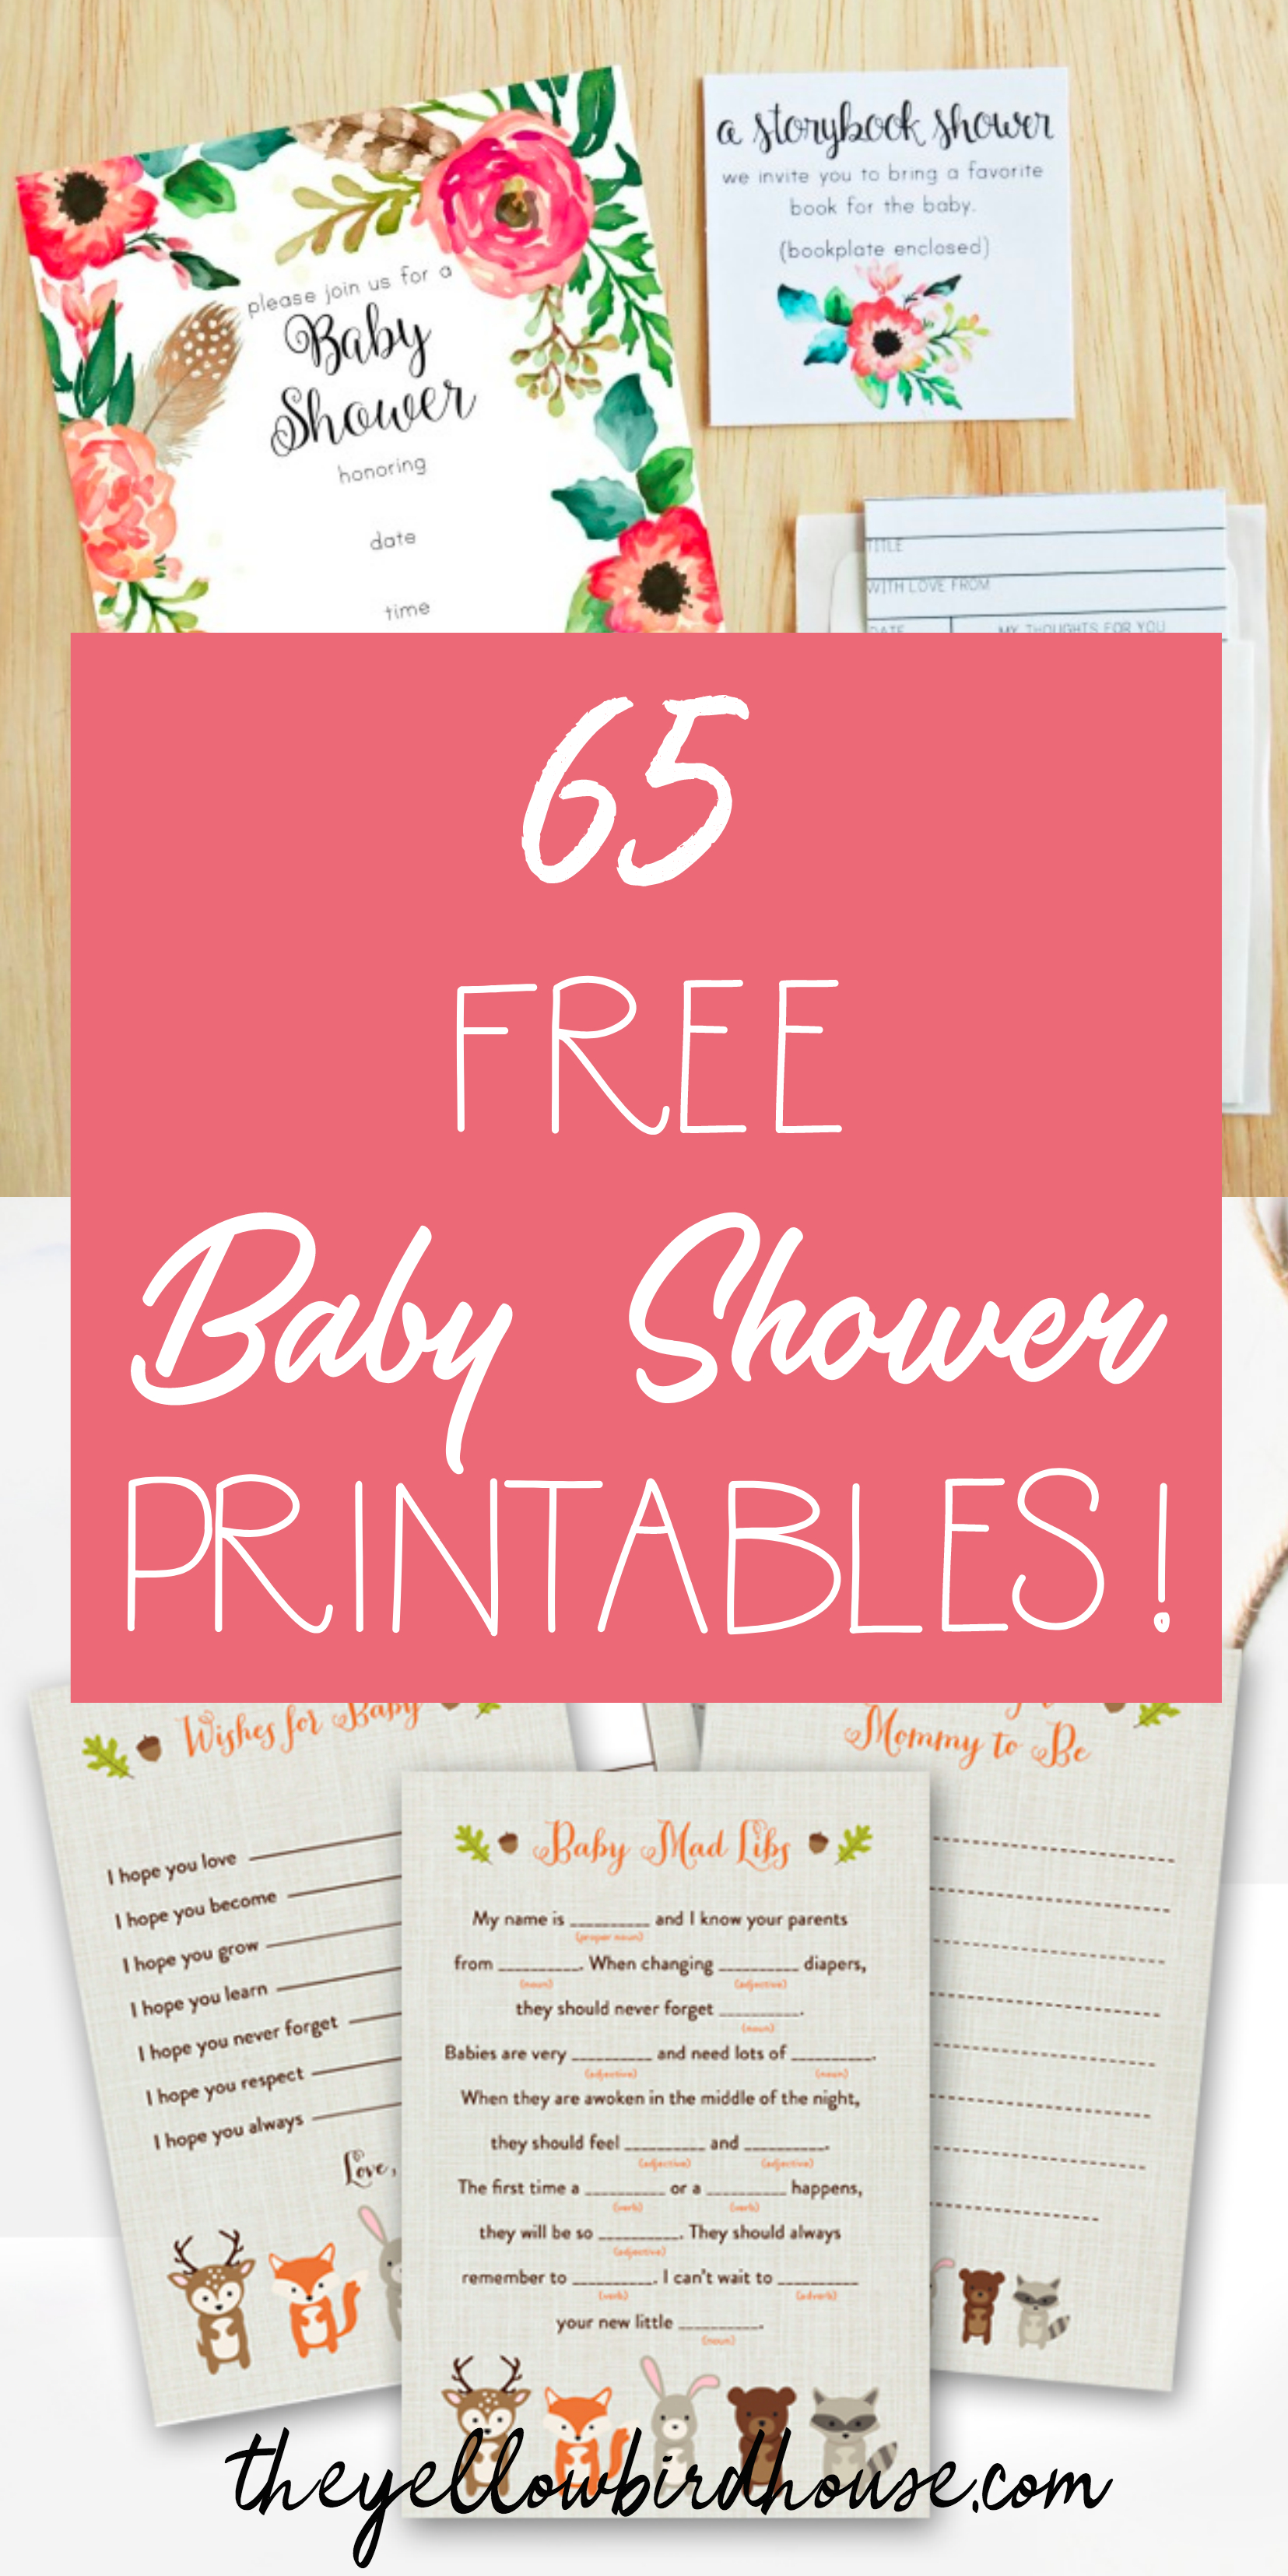 65 Free Baby Shower Printables For An Adorable Party - Free Printable Princess Baby Shower Invitations